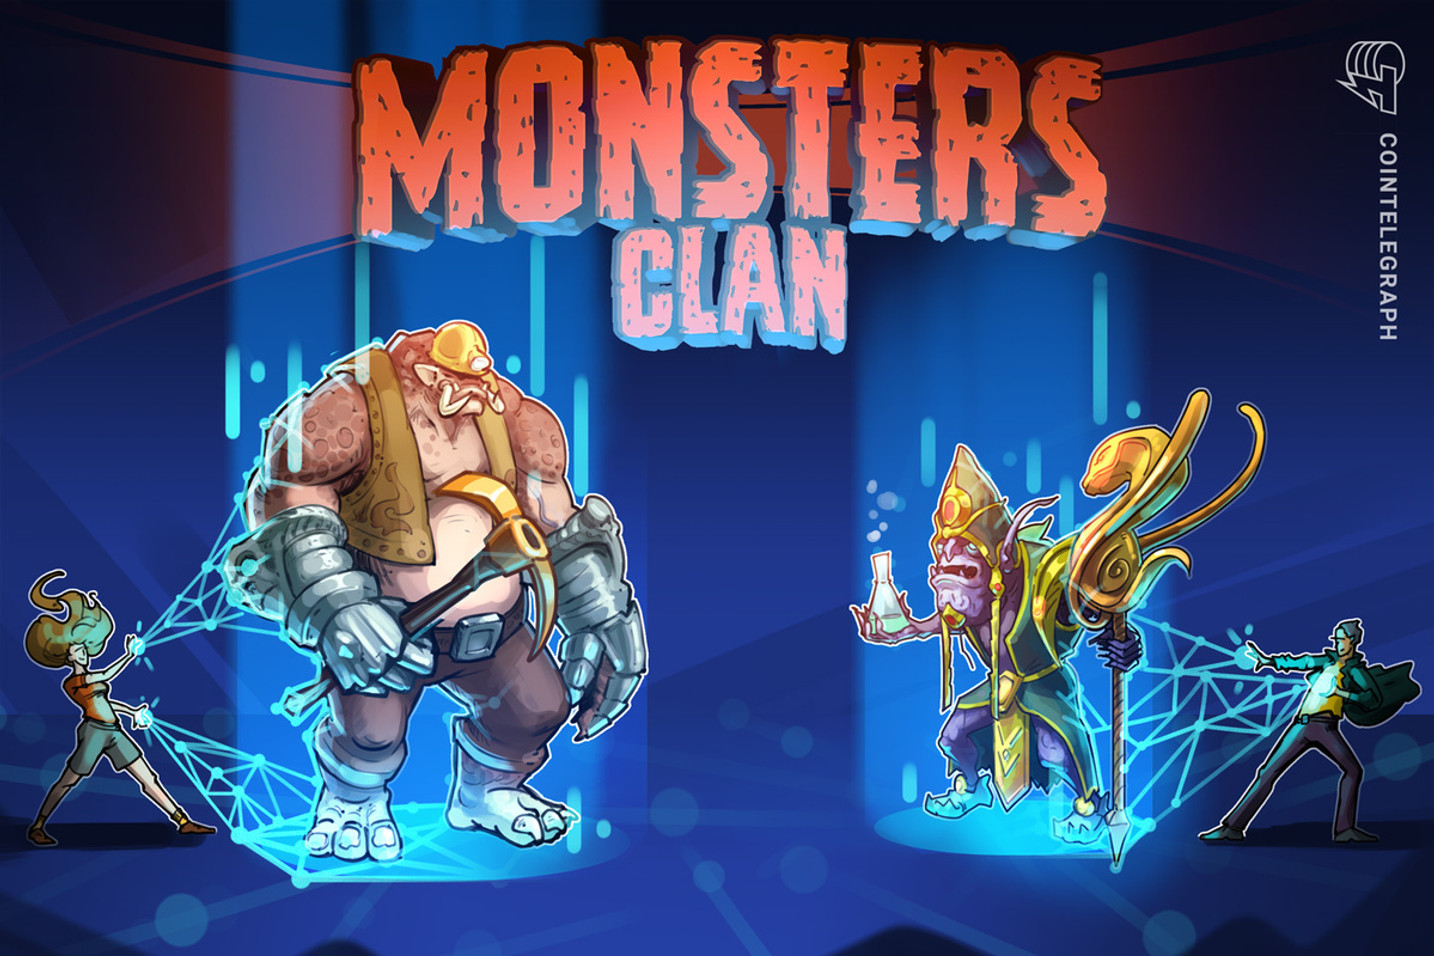 First-ever third-person NFT game allows users to play, collect, train and trade their Monsters